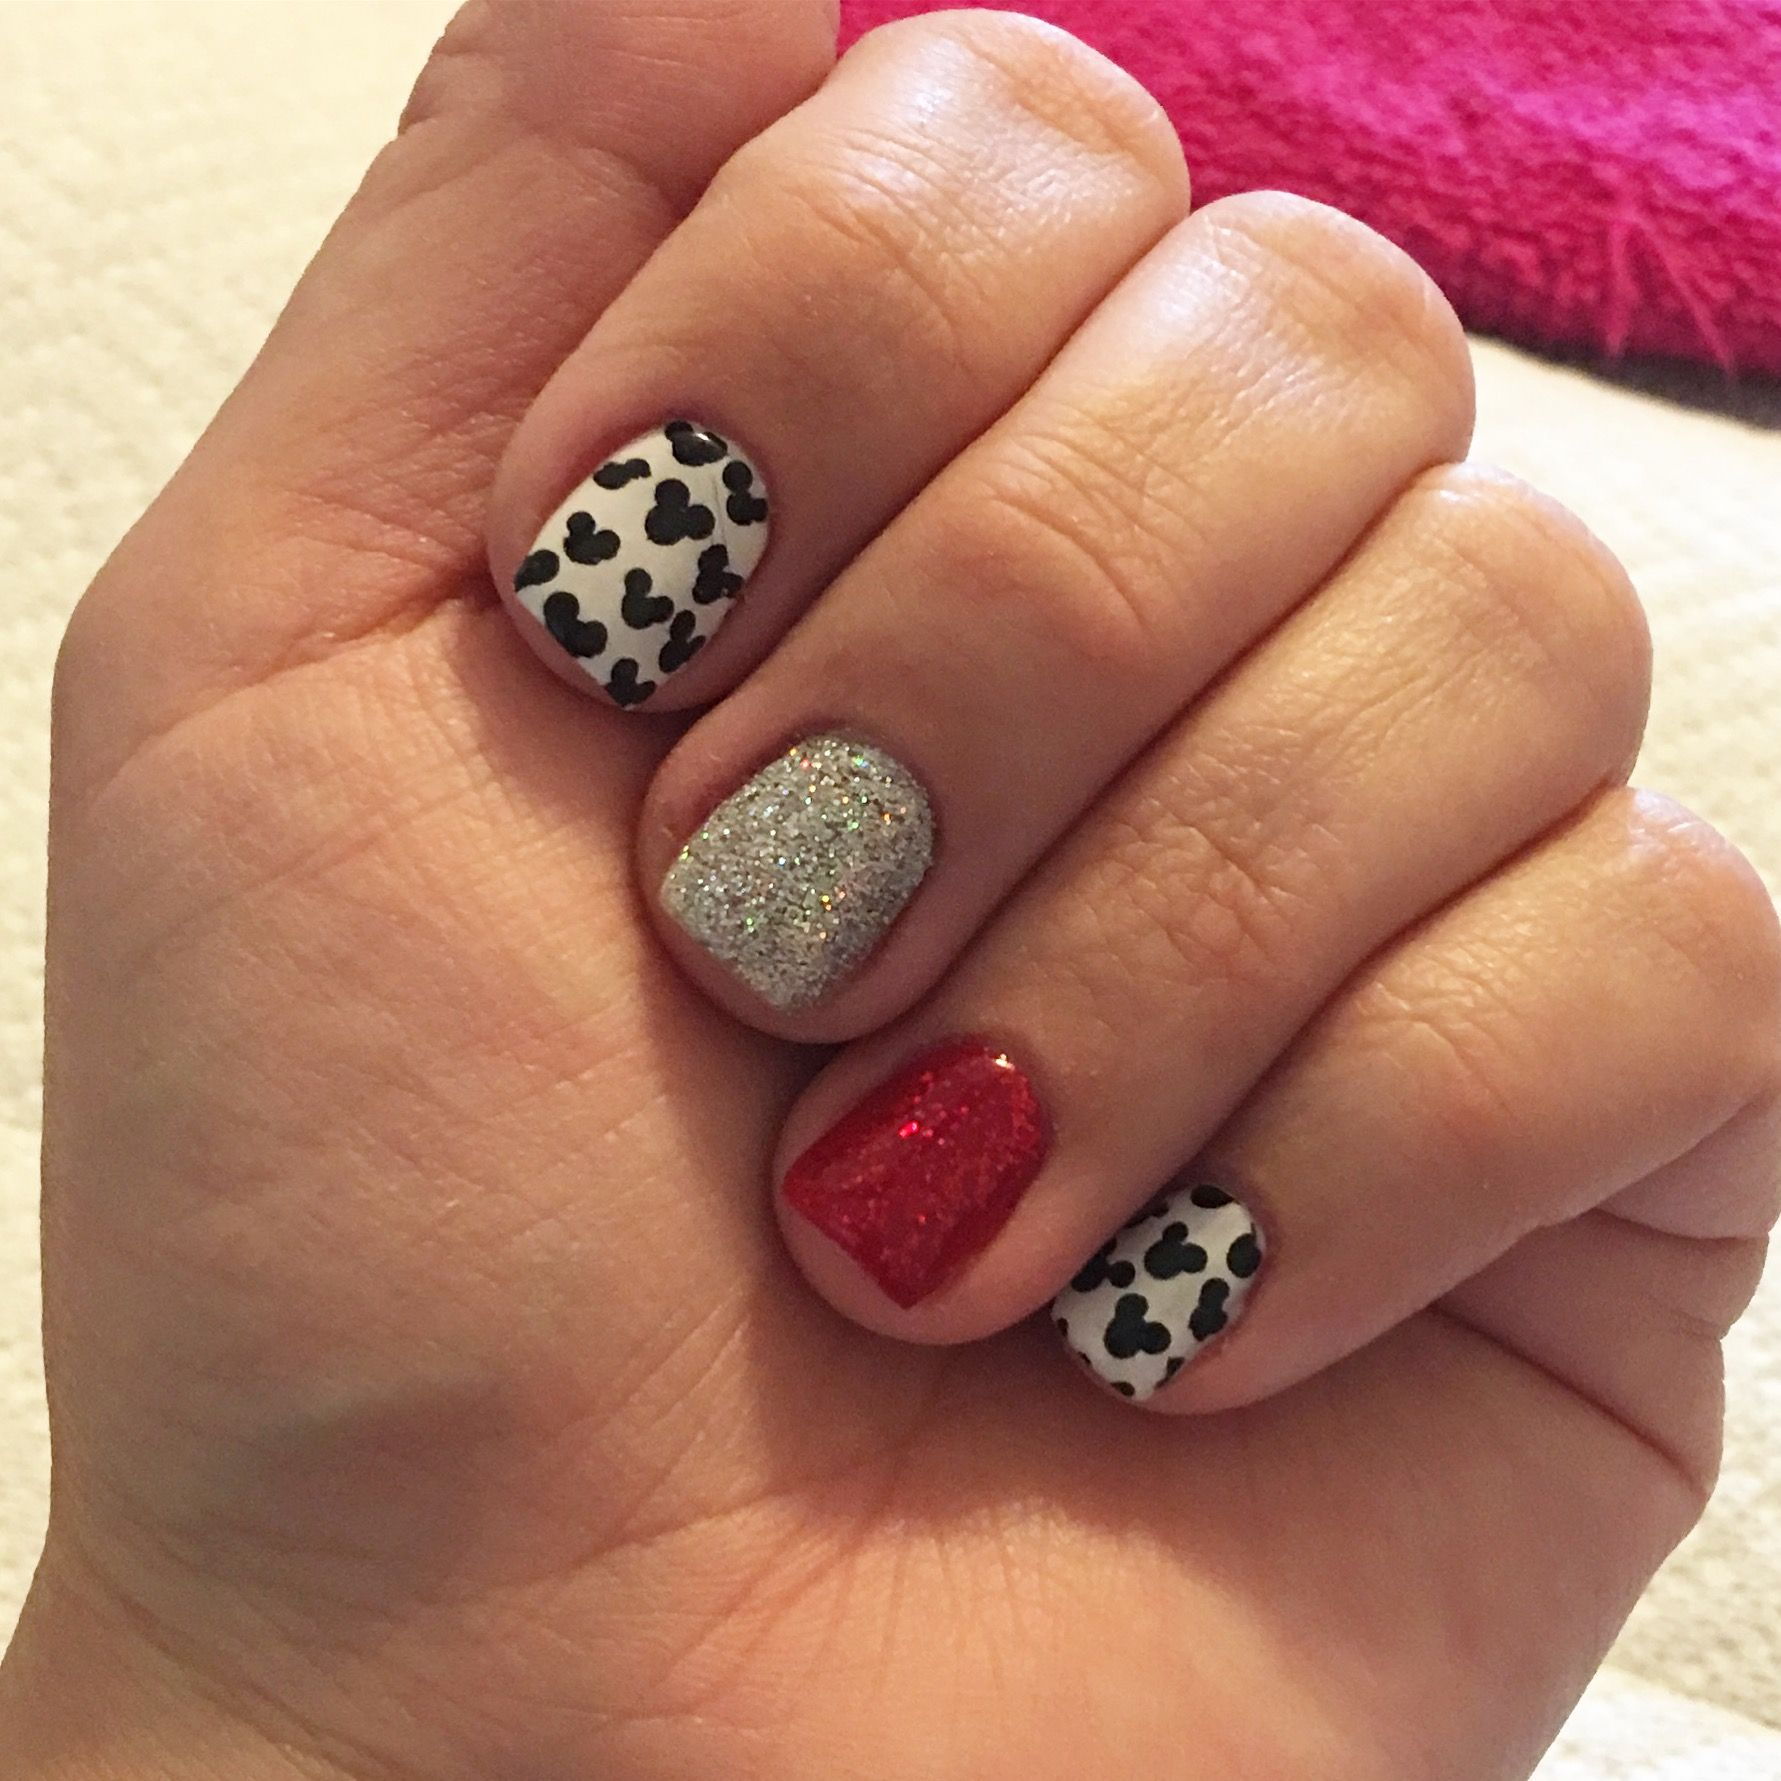 Disney gel nails. Disneyland nails. Gel nails. Mickey mouse nails ...